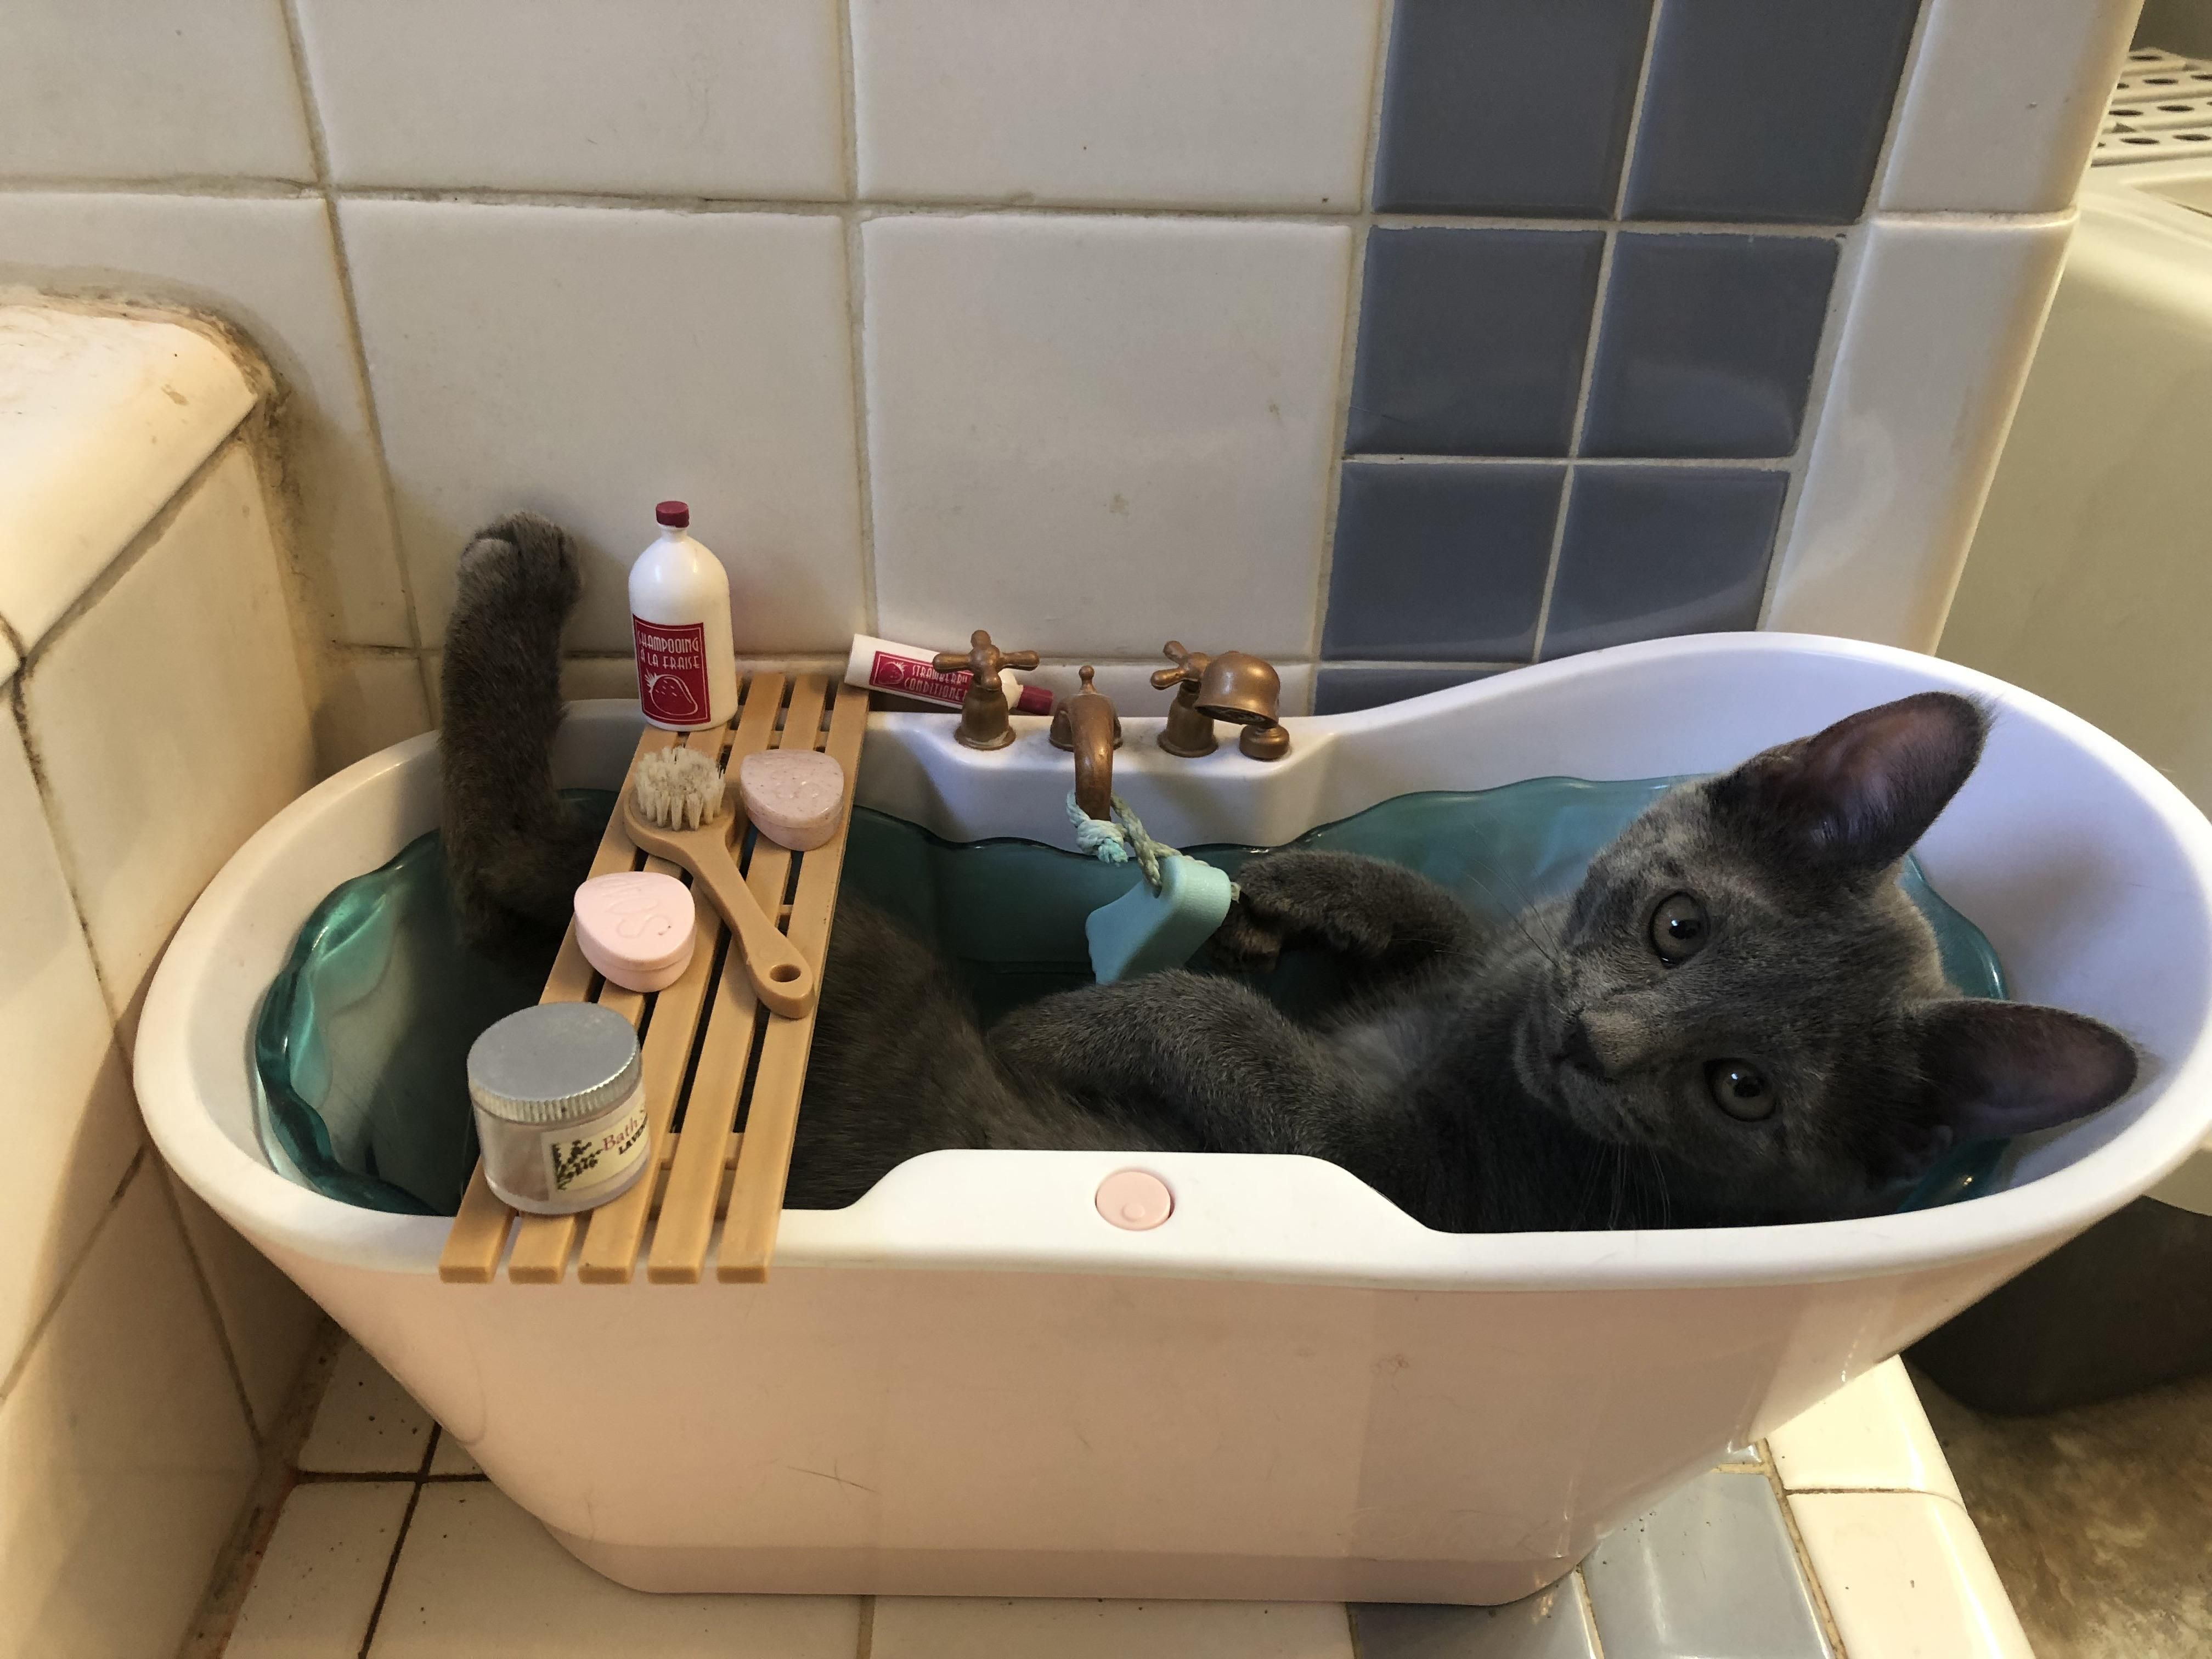 Real Estate Marketing Reviews One Of Our Kittens Only Sleeps In My Daughters Doll Bathtub In 2020 Cat Post Kittens Funny Cats